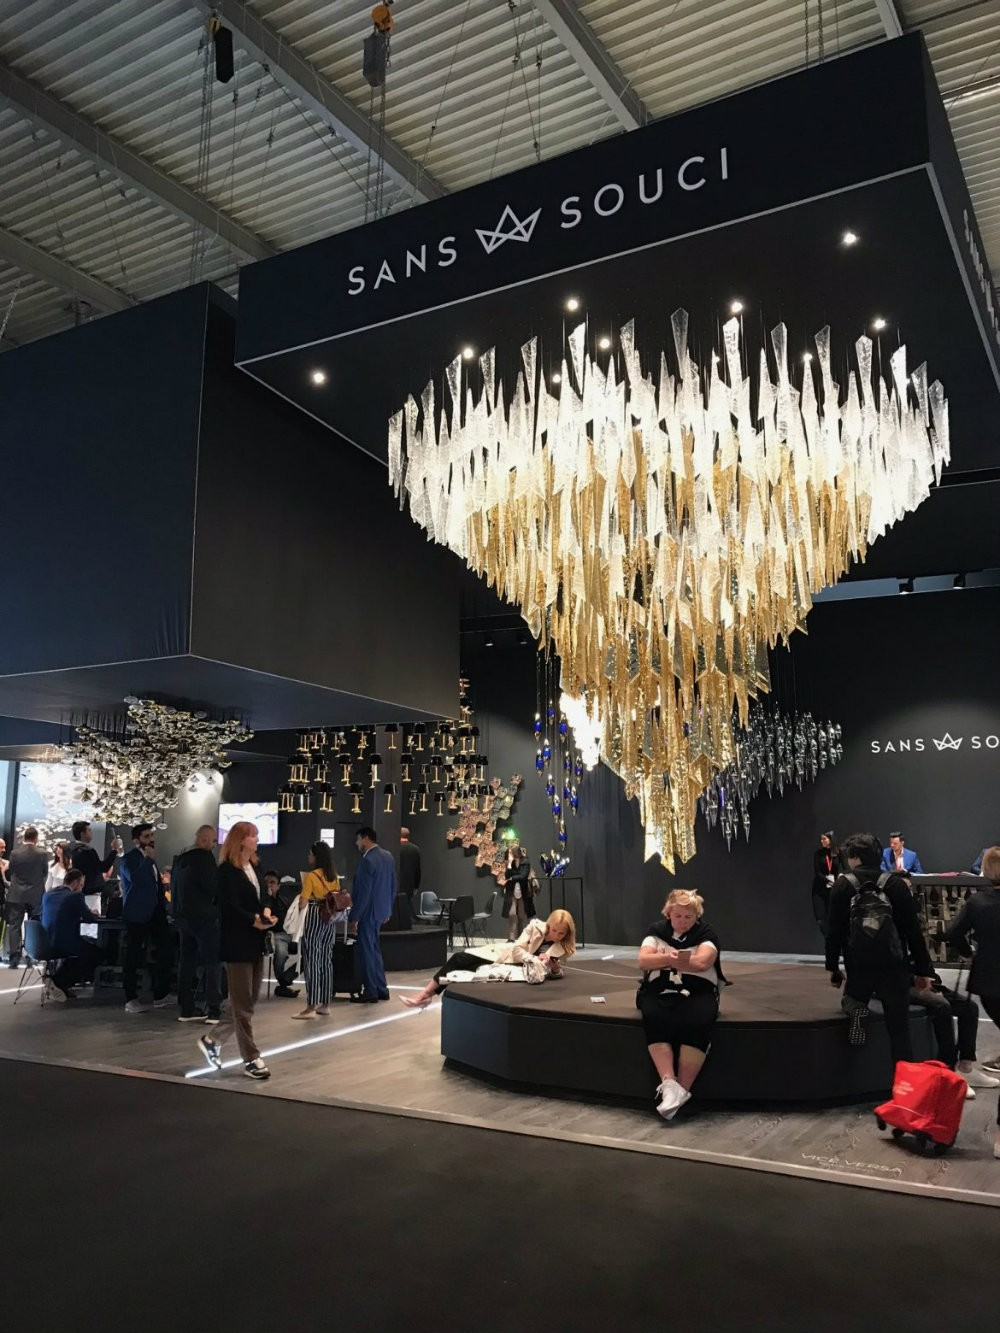 5 Incredible Lighting Stands That Surprised In Euroluce 2019 euroluce 2019 5 Incredible Lighting Stands That Surprised In Euroluce 2019 5 Incredible Lighting Stands That Surprised In Euroluce 2019 4